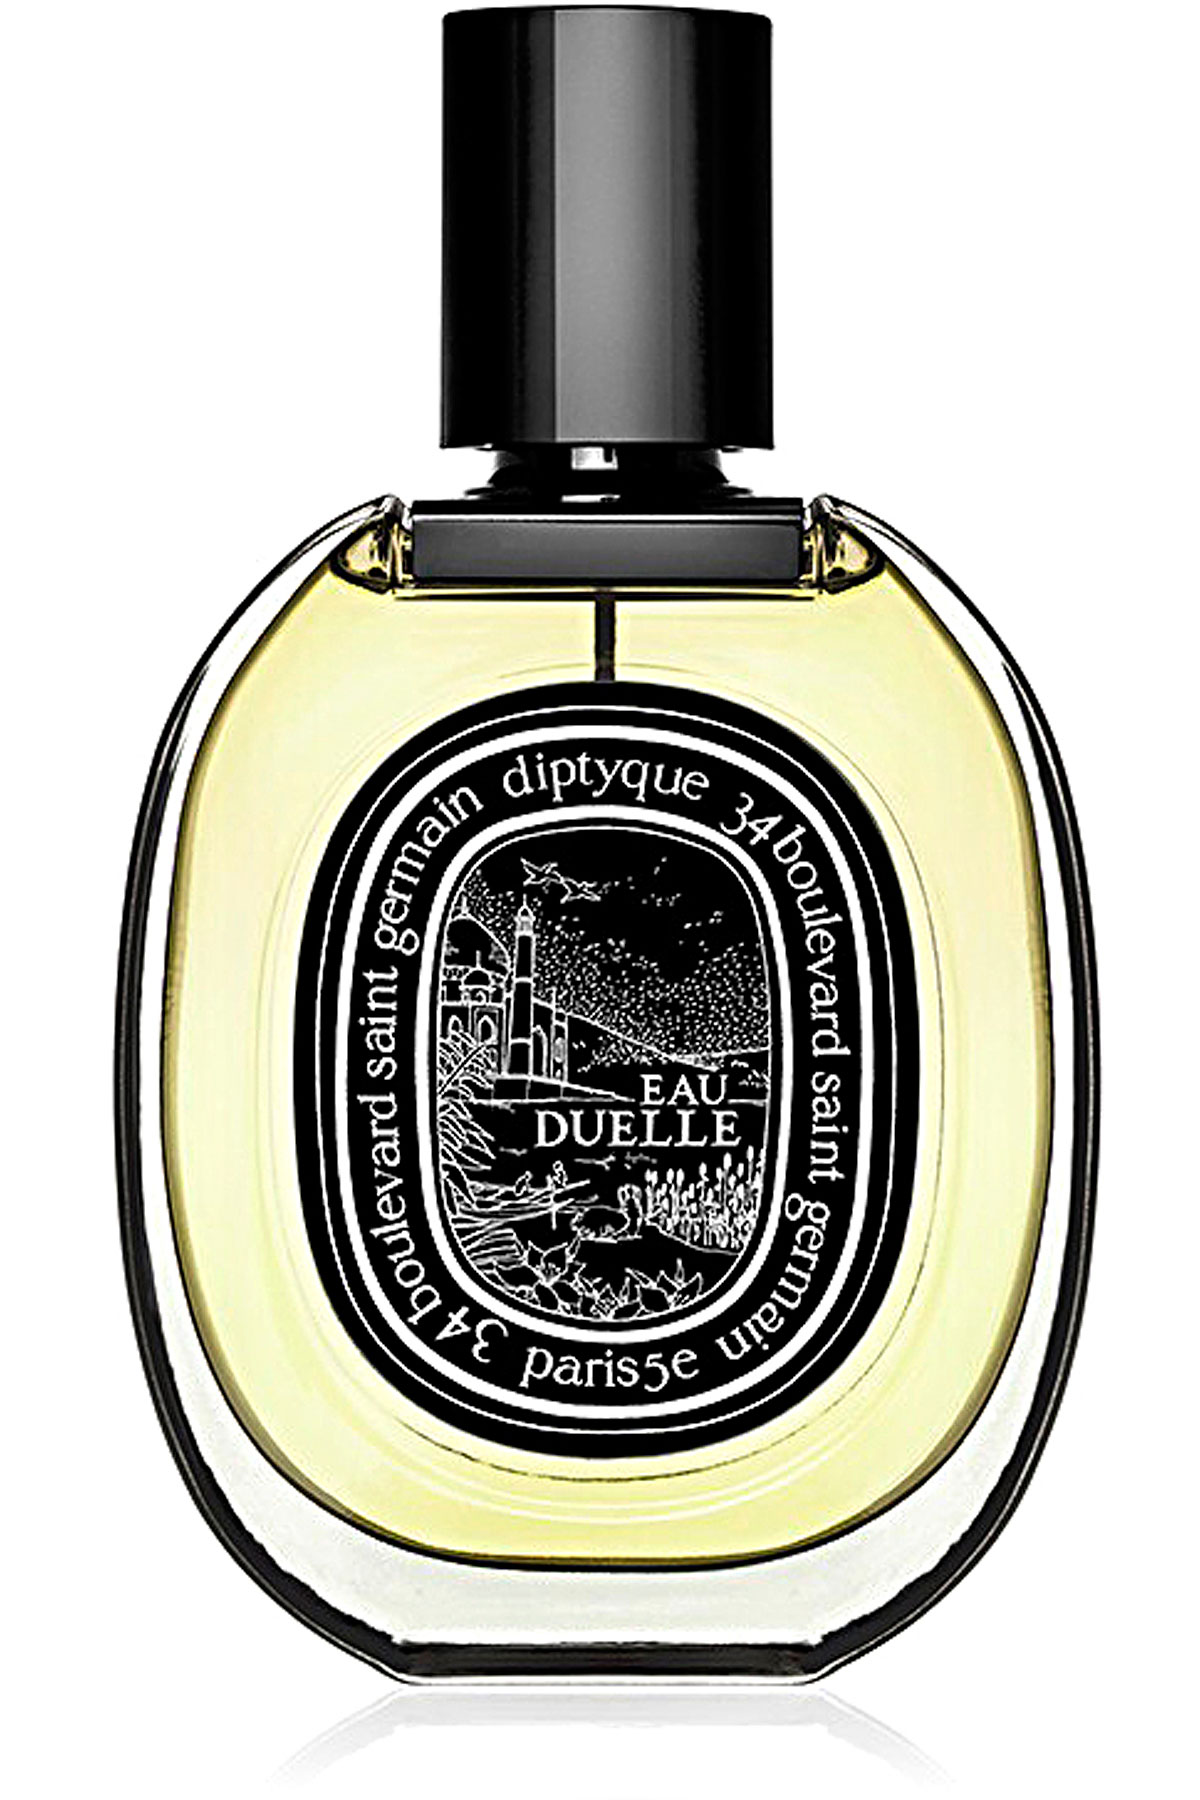 Diptyque Fragrances for Men, Eau Duelle - Eau De Parfum - 75 Ml, 2019, 75 ml